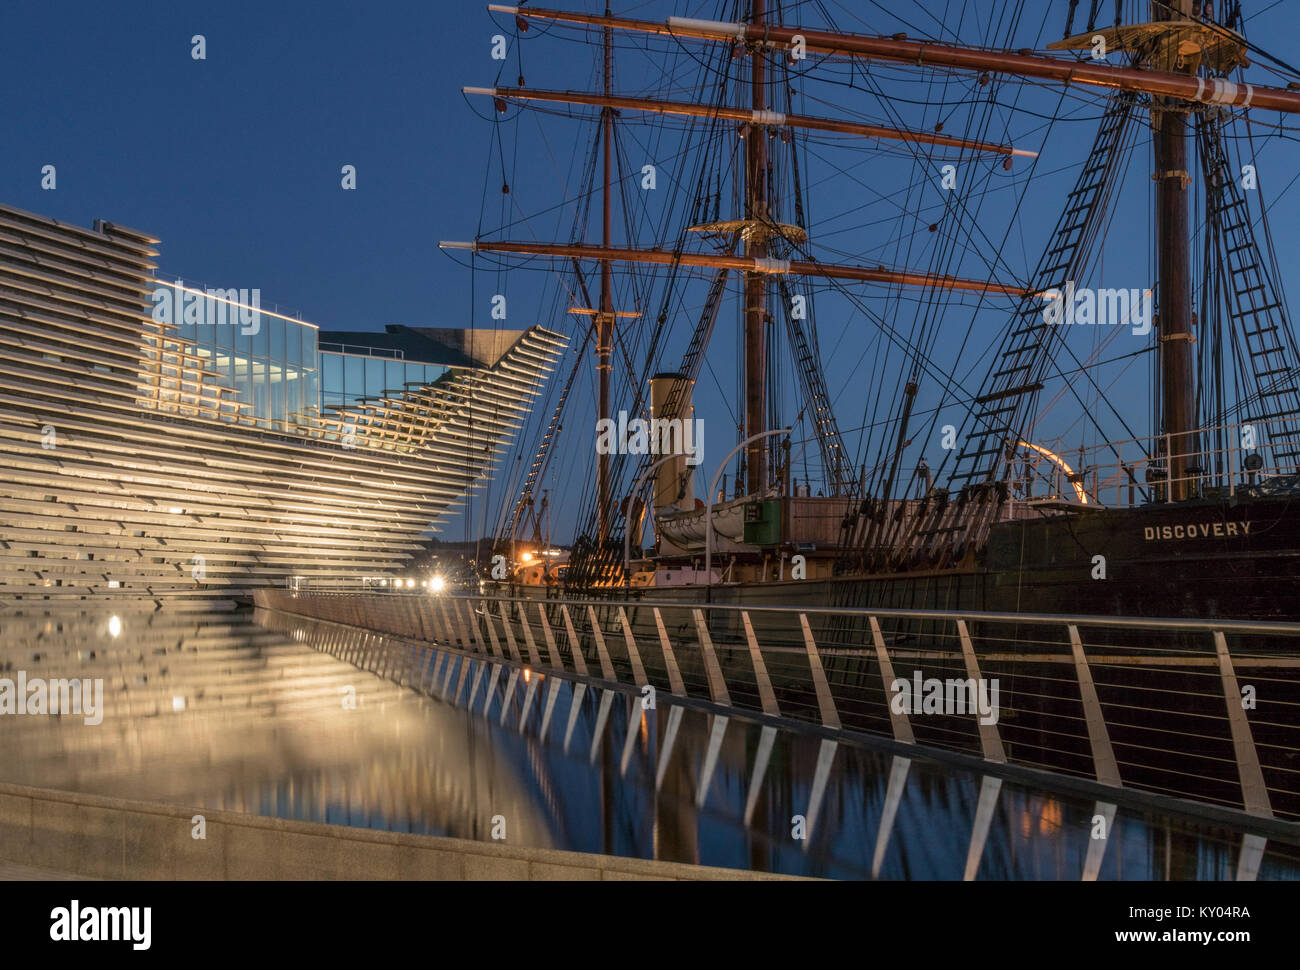 The V&A design museum has been sited next to the RRS Discovery as part of the waterfront development scheme in Dundee, Stock Photo